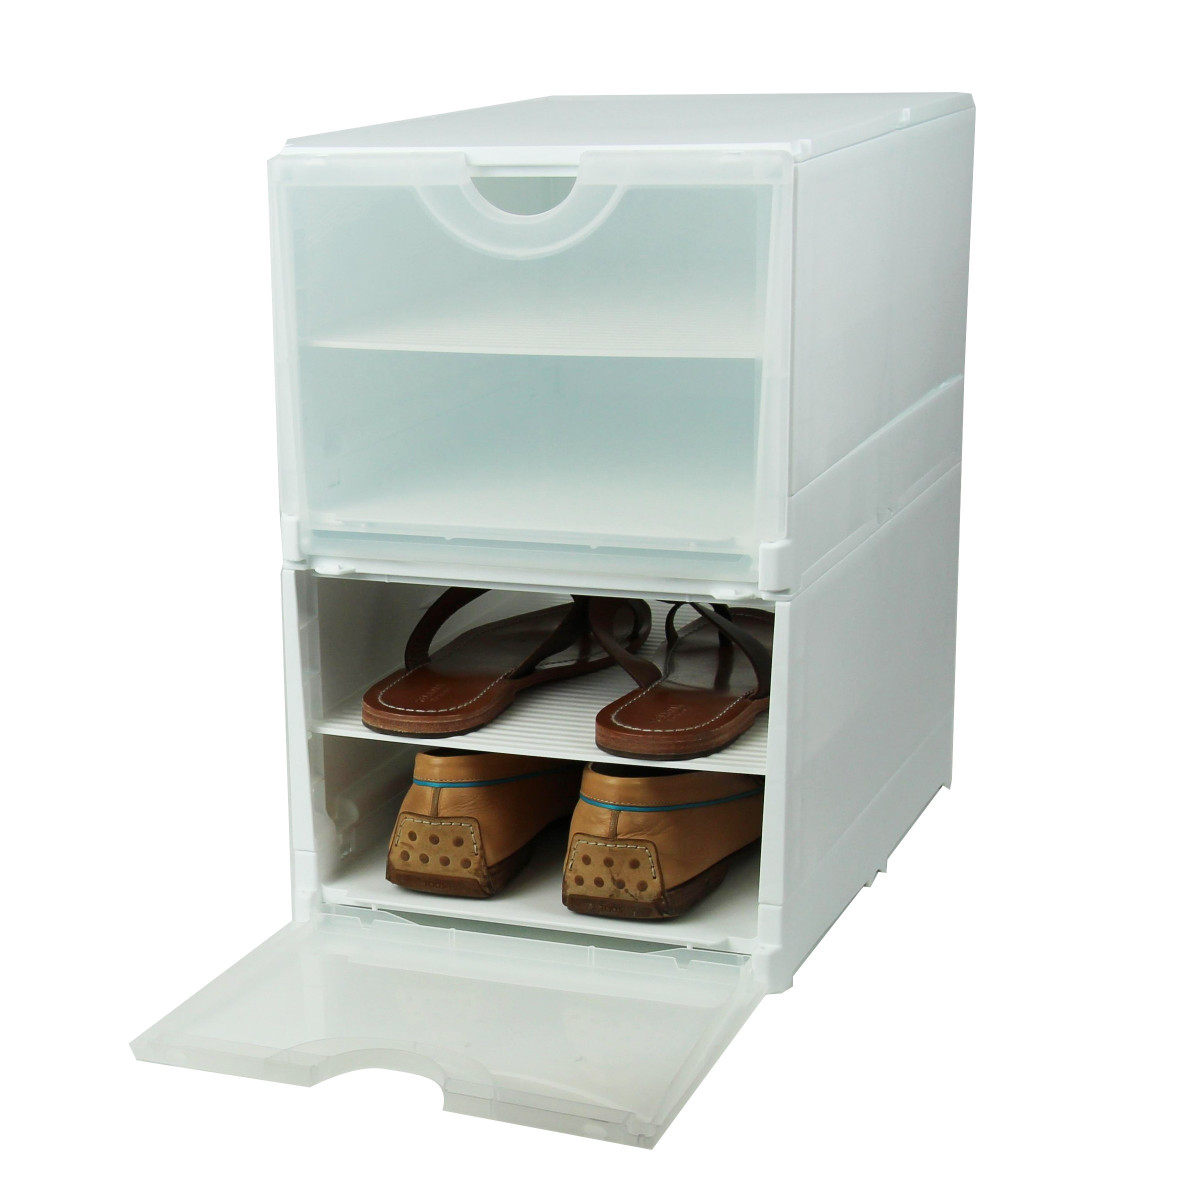 module de rangement pour 4 paires chaussures. Black Bedroom Furniture Sets. Home Design Ideas